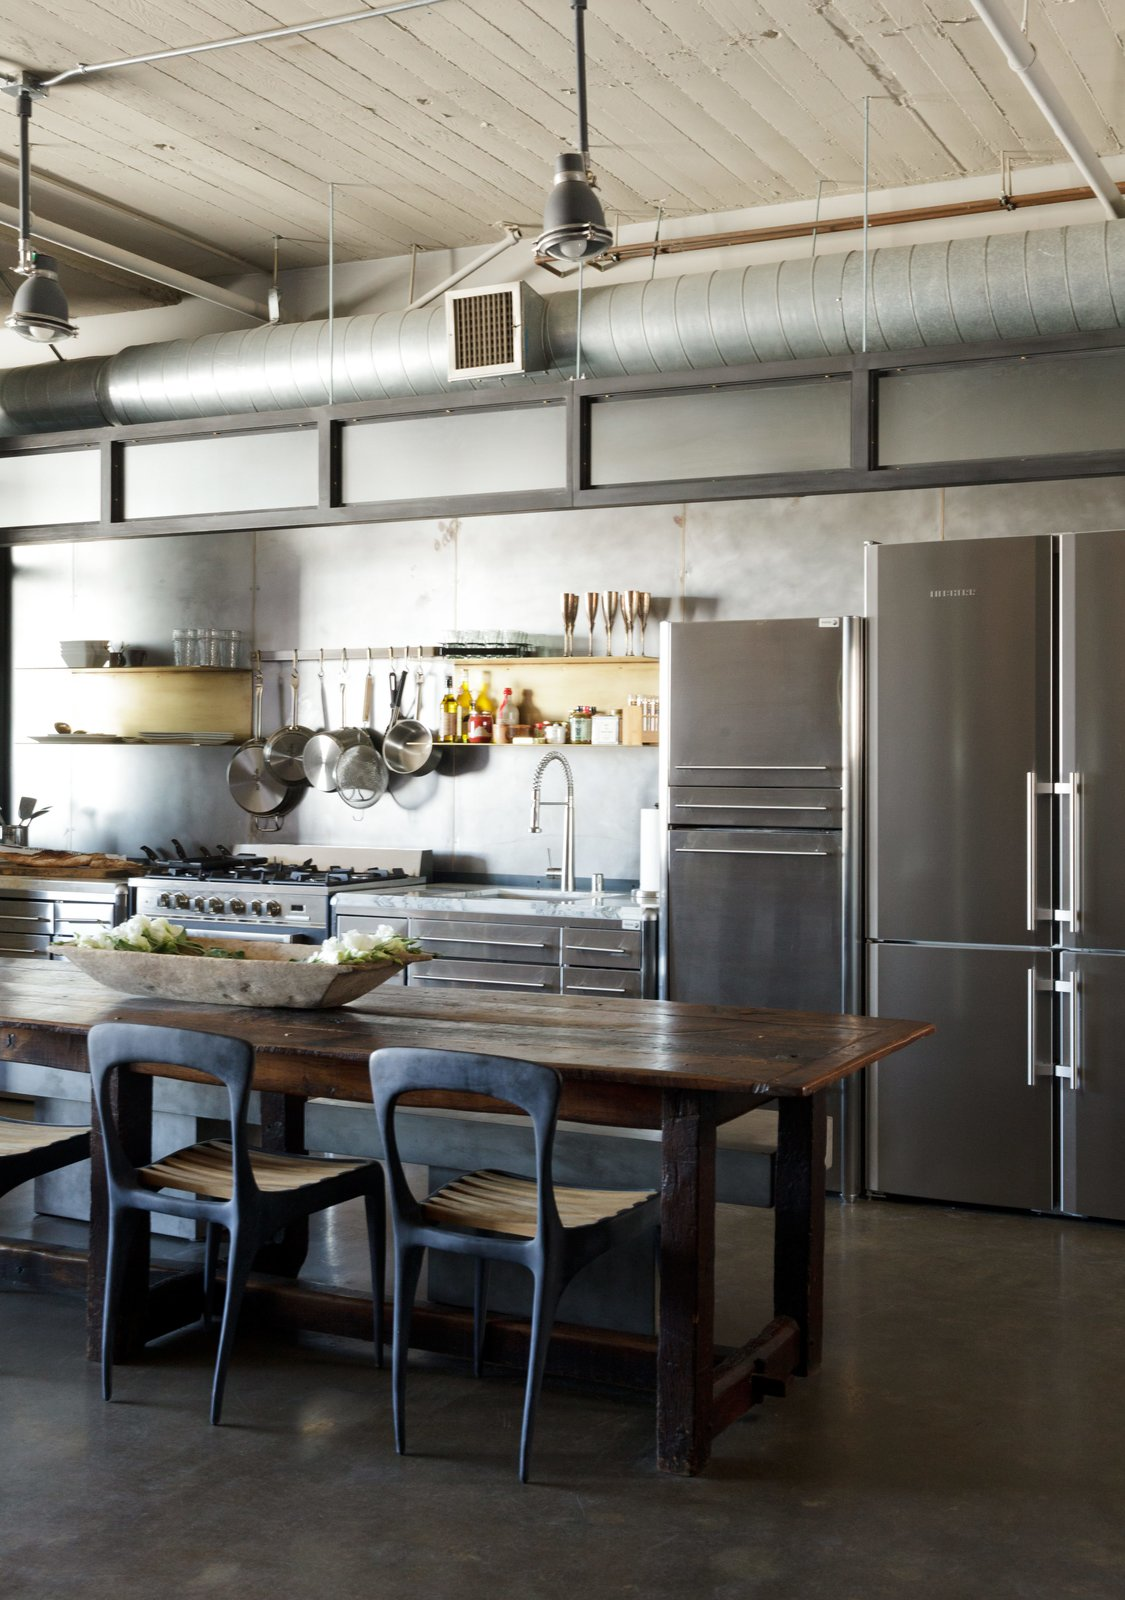 Kitchen, Refrigerator, Undermount Sink, Ceiling Lighting, Pendant Lighting, and Range In a loft renovated by designer Andrea Michaelson, a Liebherr refrigerator blends in with stainless-steel cabinets from Fagor. Flow chairs by Henry Hall Designs and CB2 benches pull up to an antique farm table.  Photo 4 of 5 in Editor's Letter: 5 Extraordinary Interiors We Love from Steel and Brass Cover Nearly Every Surface of This Industrial L.A. Kitchen